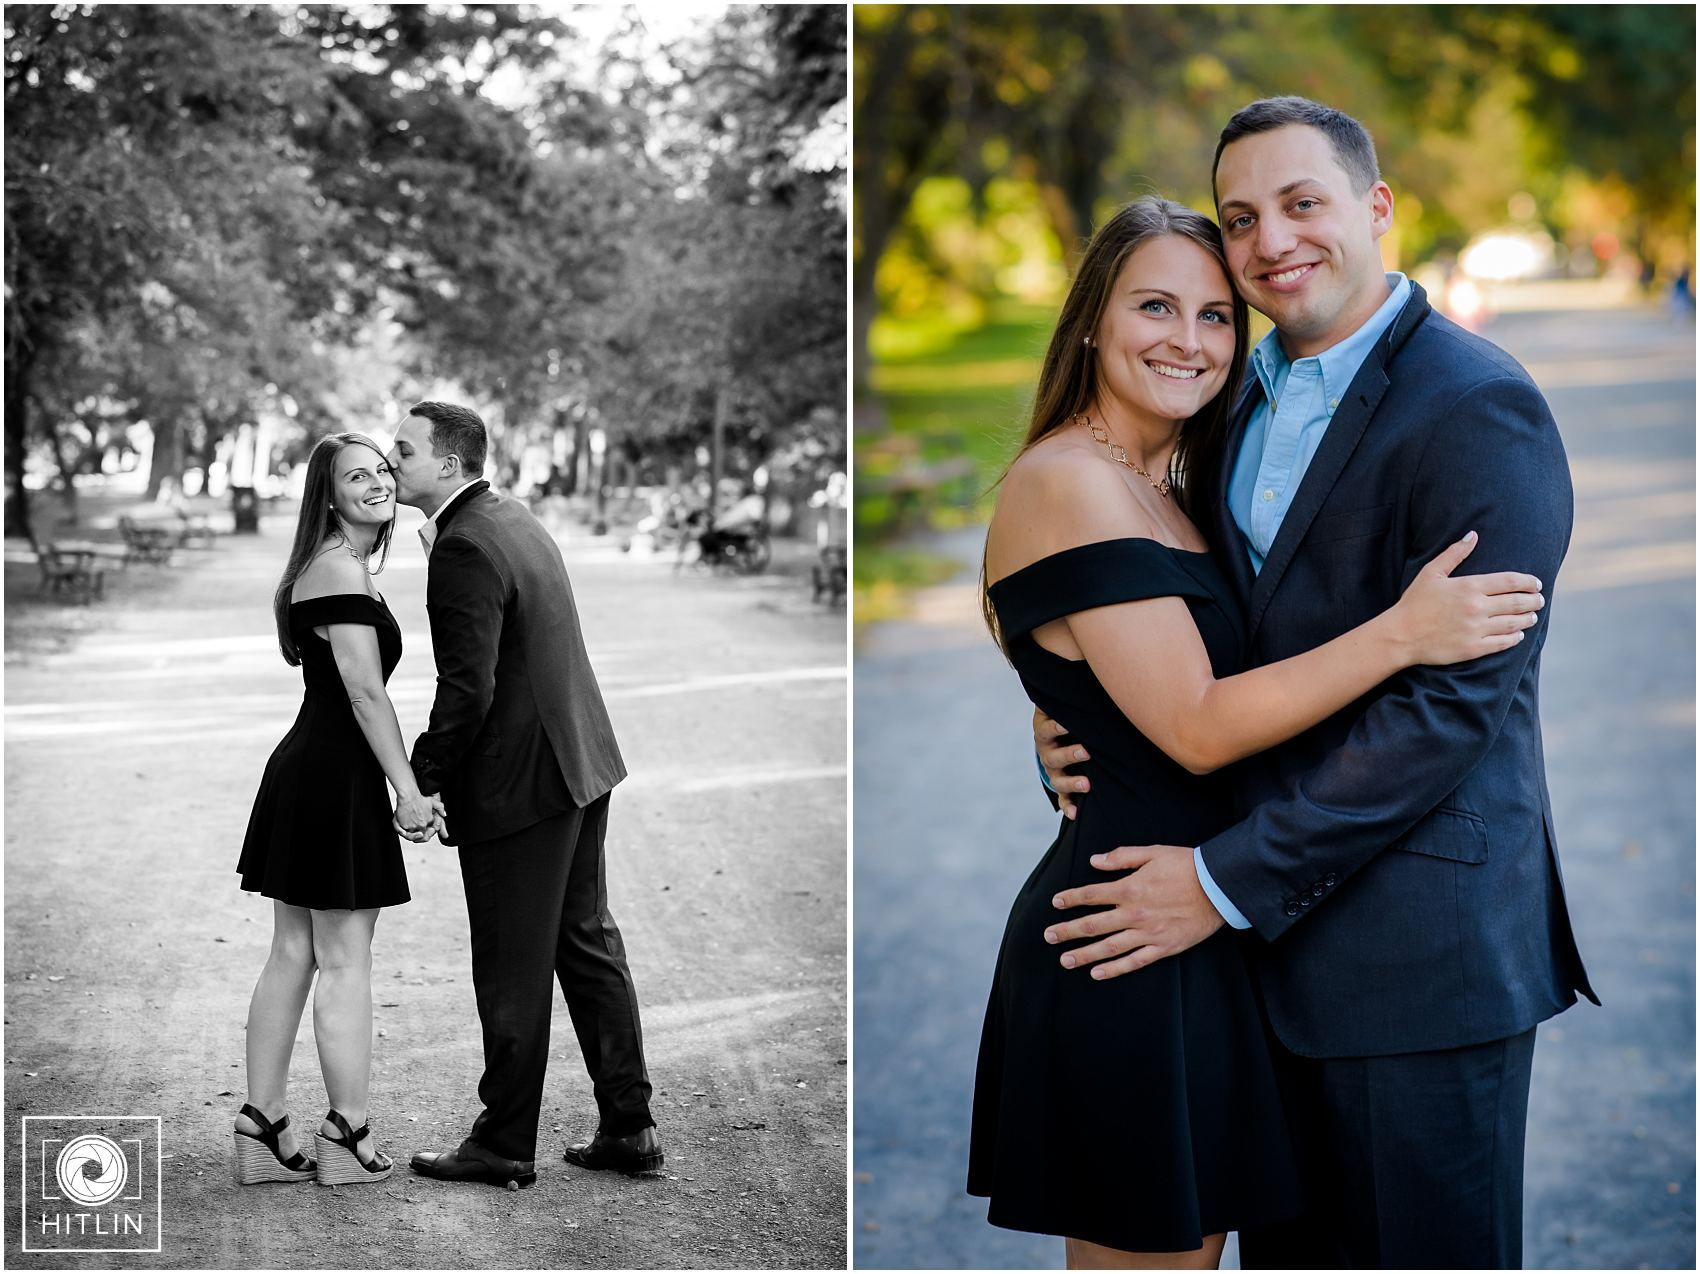 Lindsay & Bryan's Engagement Session